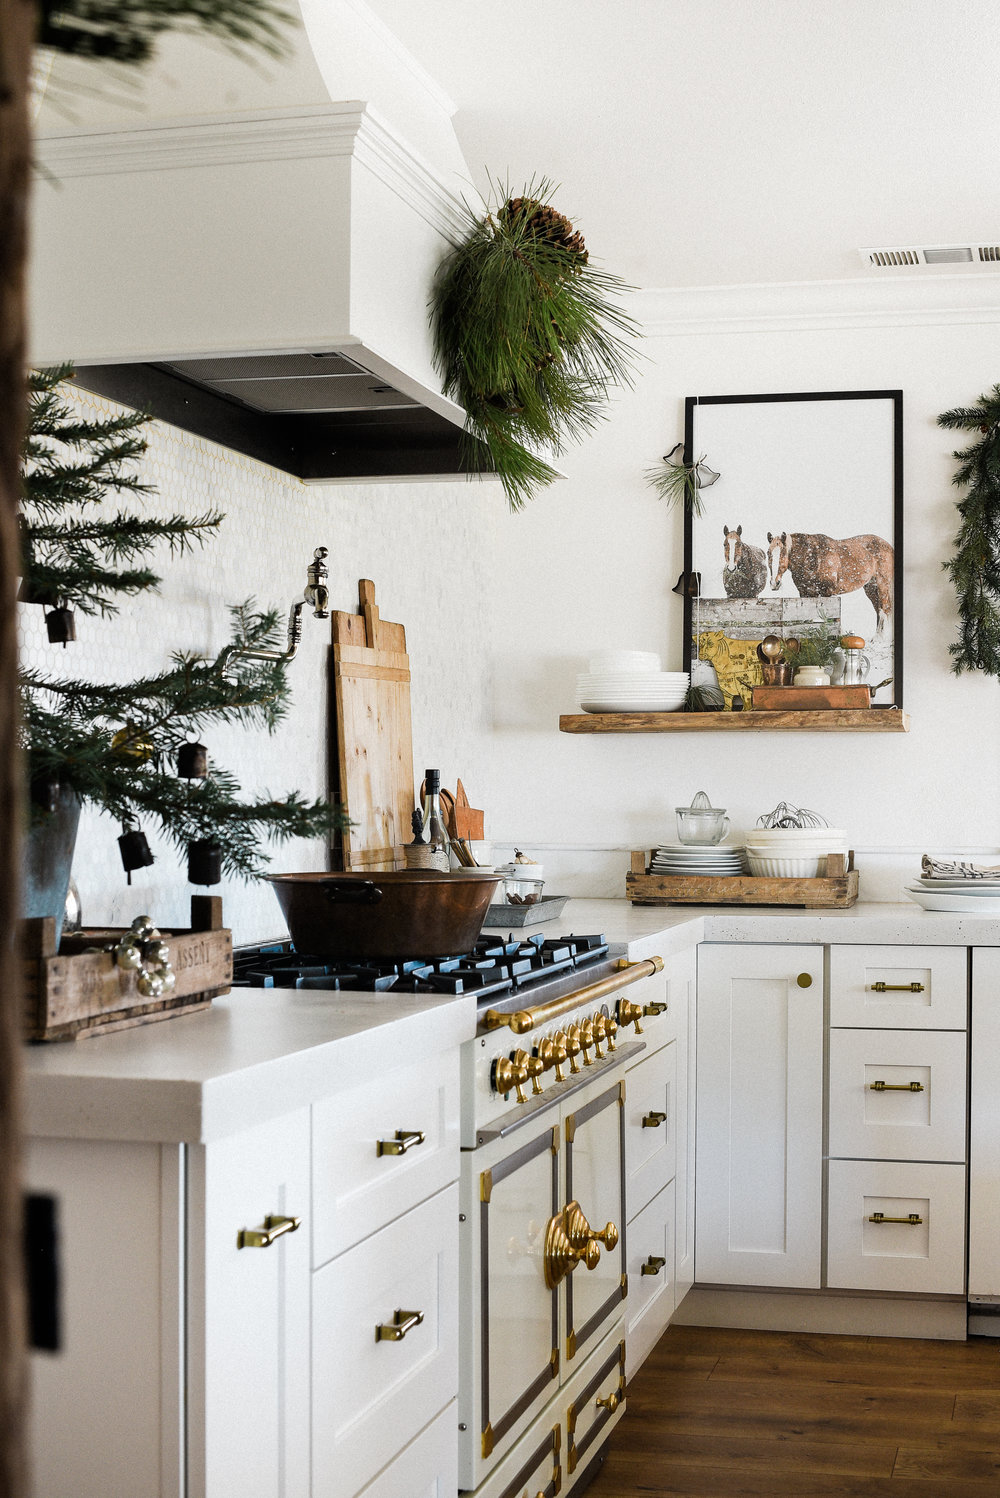 Minimalistic Christmas kitchen decor ideas from boxwoodavenue.com #christmasdecor #christmaskitchen & Farmhouse Christmas Decorating Ideas: Our Christmas Kitchen ...